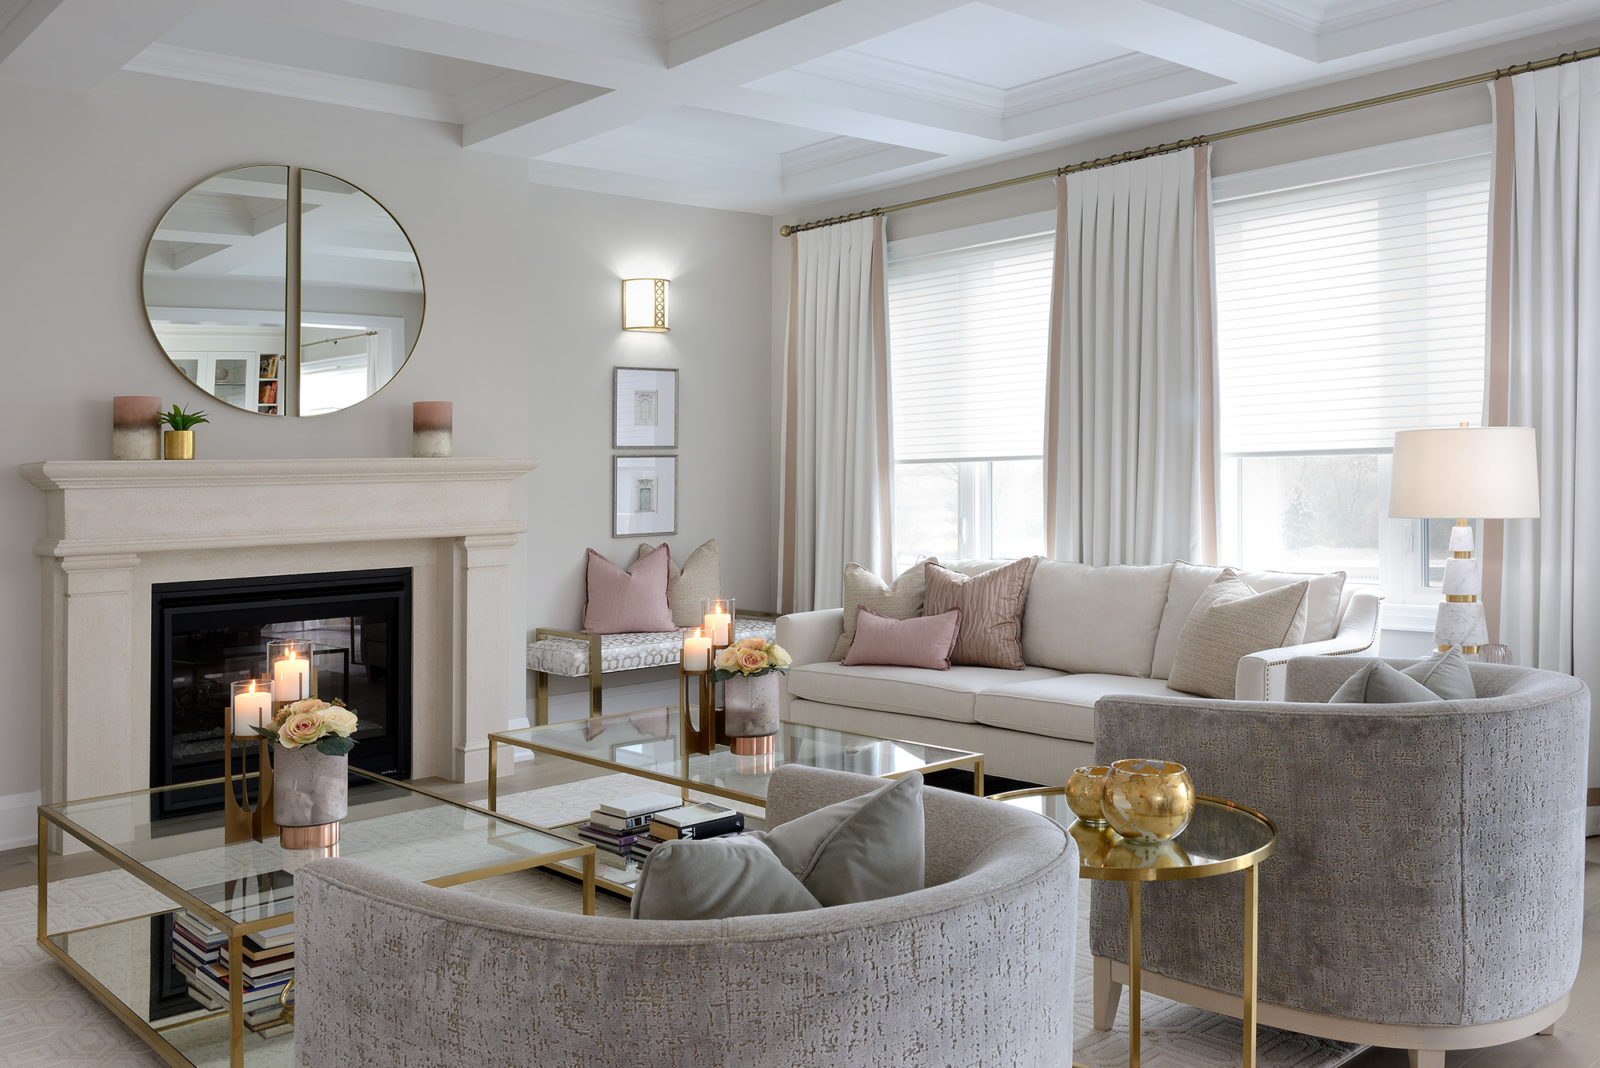 Gold metallic accents in living room